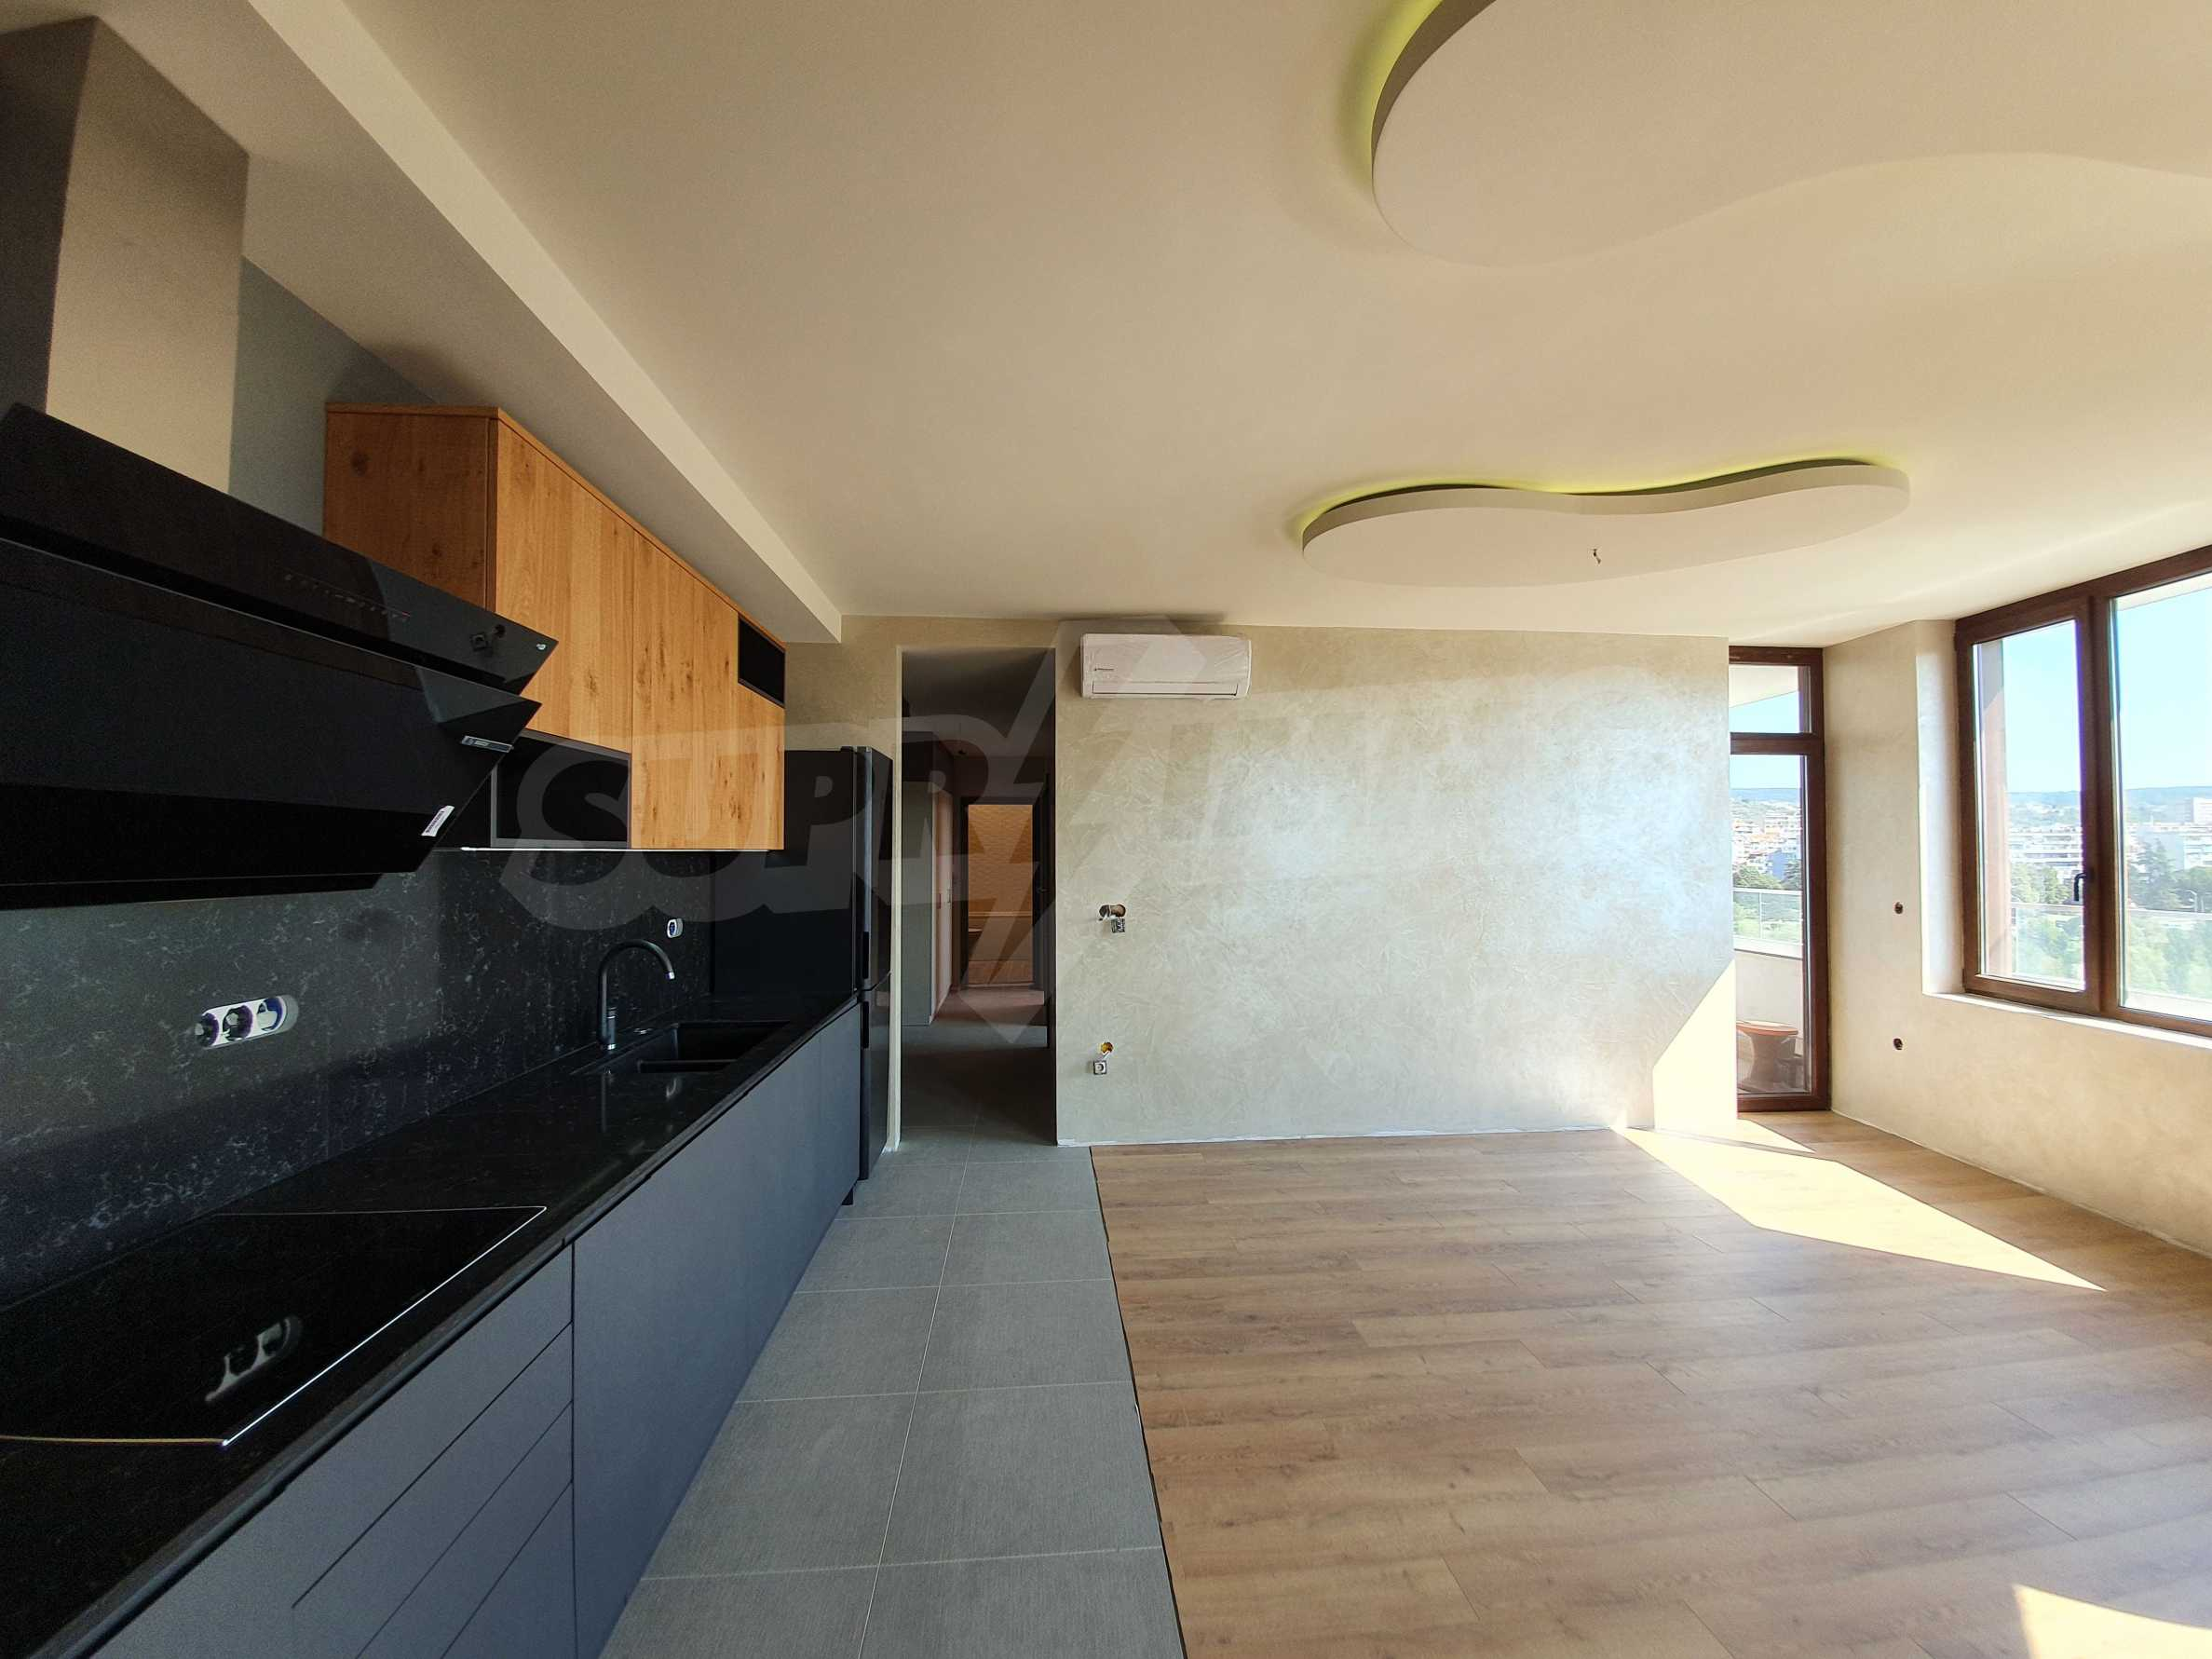 Panoramic two-bedroom apartment with views of the lake and Varna 9